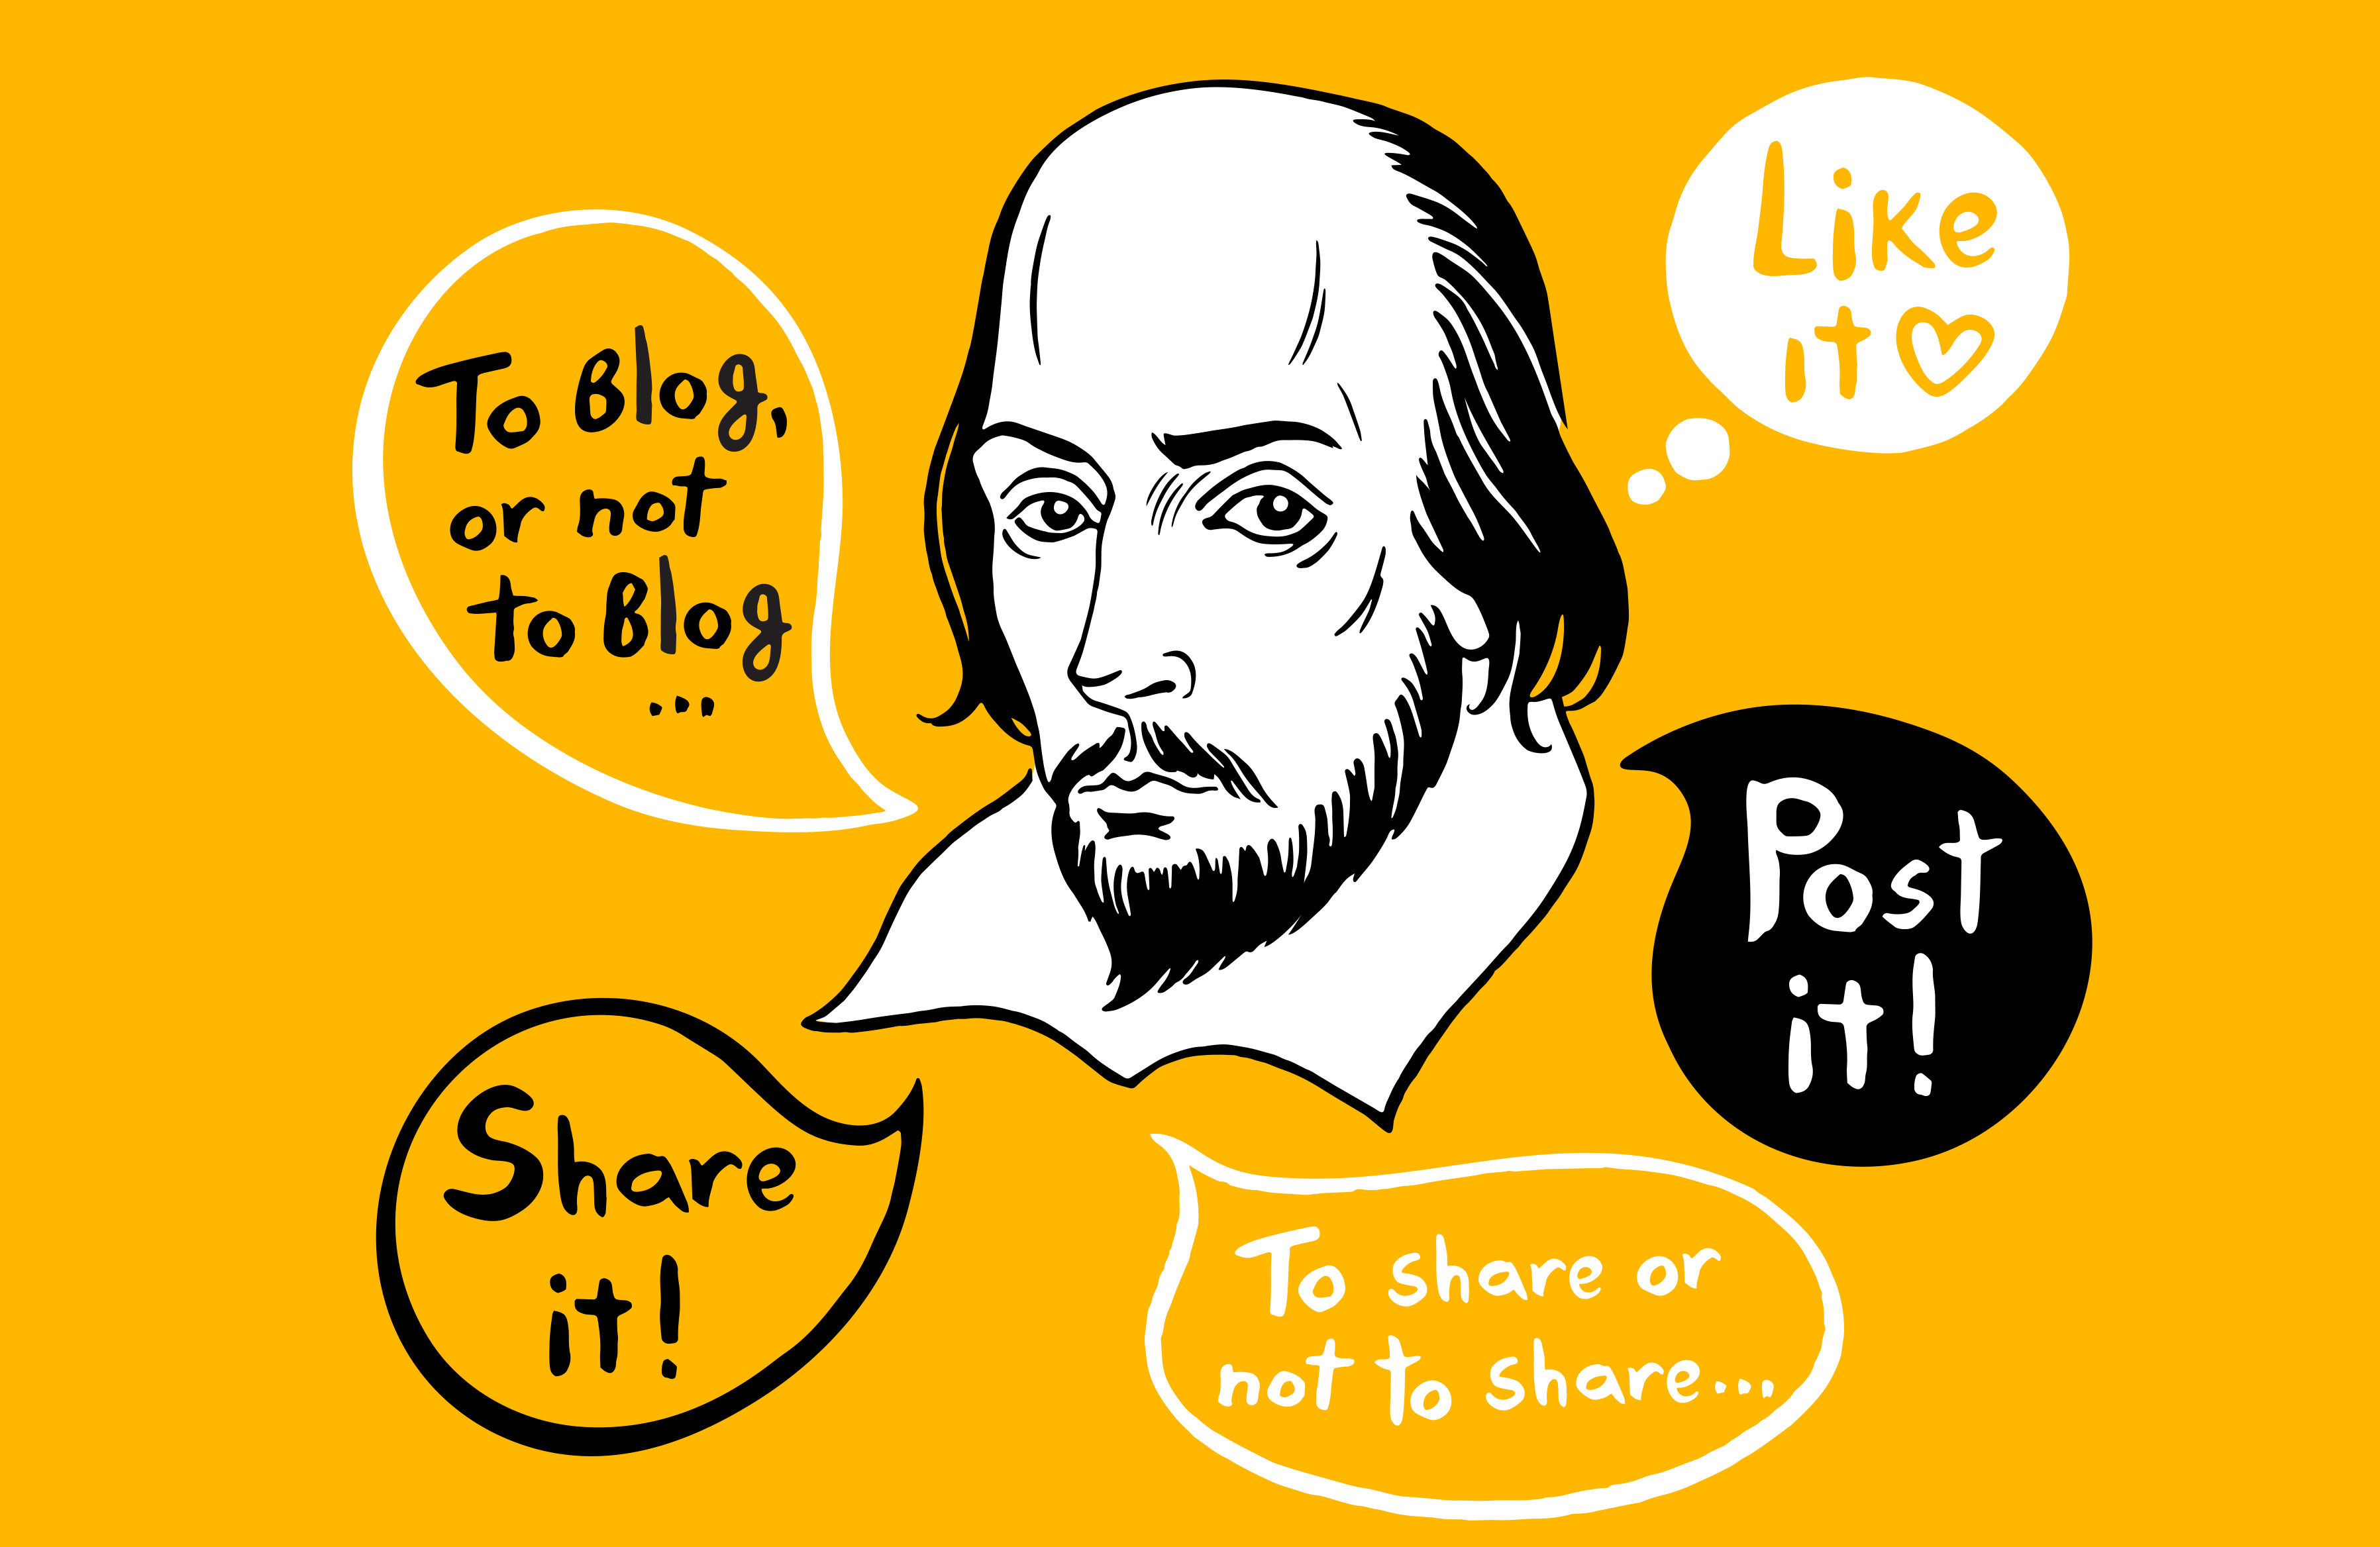 Illustration, Shakespeare portrait with speech bubbles and social media, internet, blogging, web communications quotes.